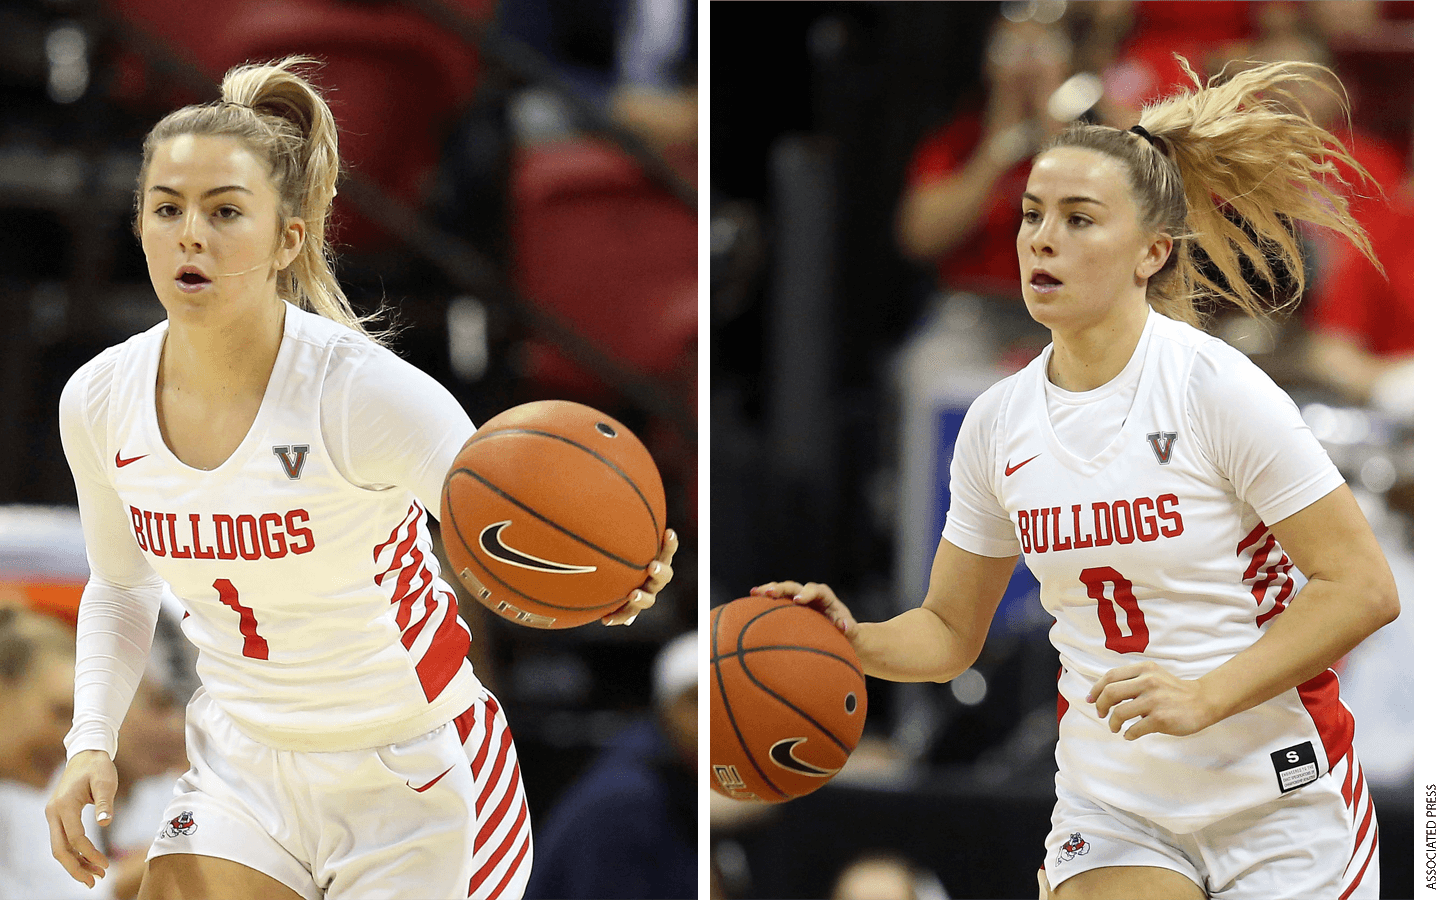 Twins Haley (left) and Hanna Cavinder, who are top-scoring basketball players for Fresno State, have more than 3 million followers on TikTok, plus another quarter-million followers each on Instagram—an audience size substantial enough to land them a sponsorship with Boost Mobile, among other deals.